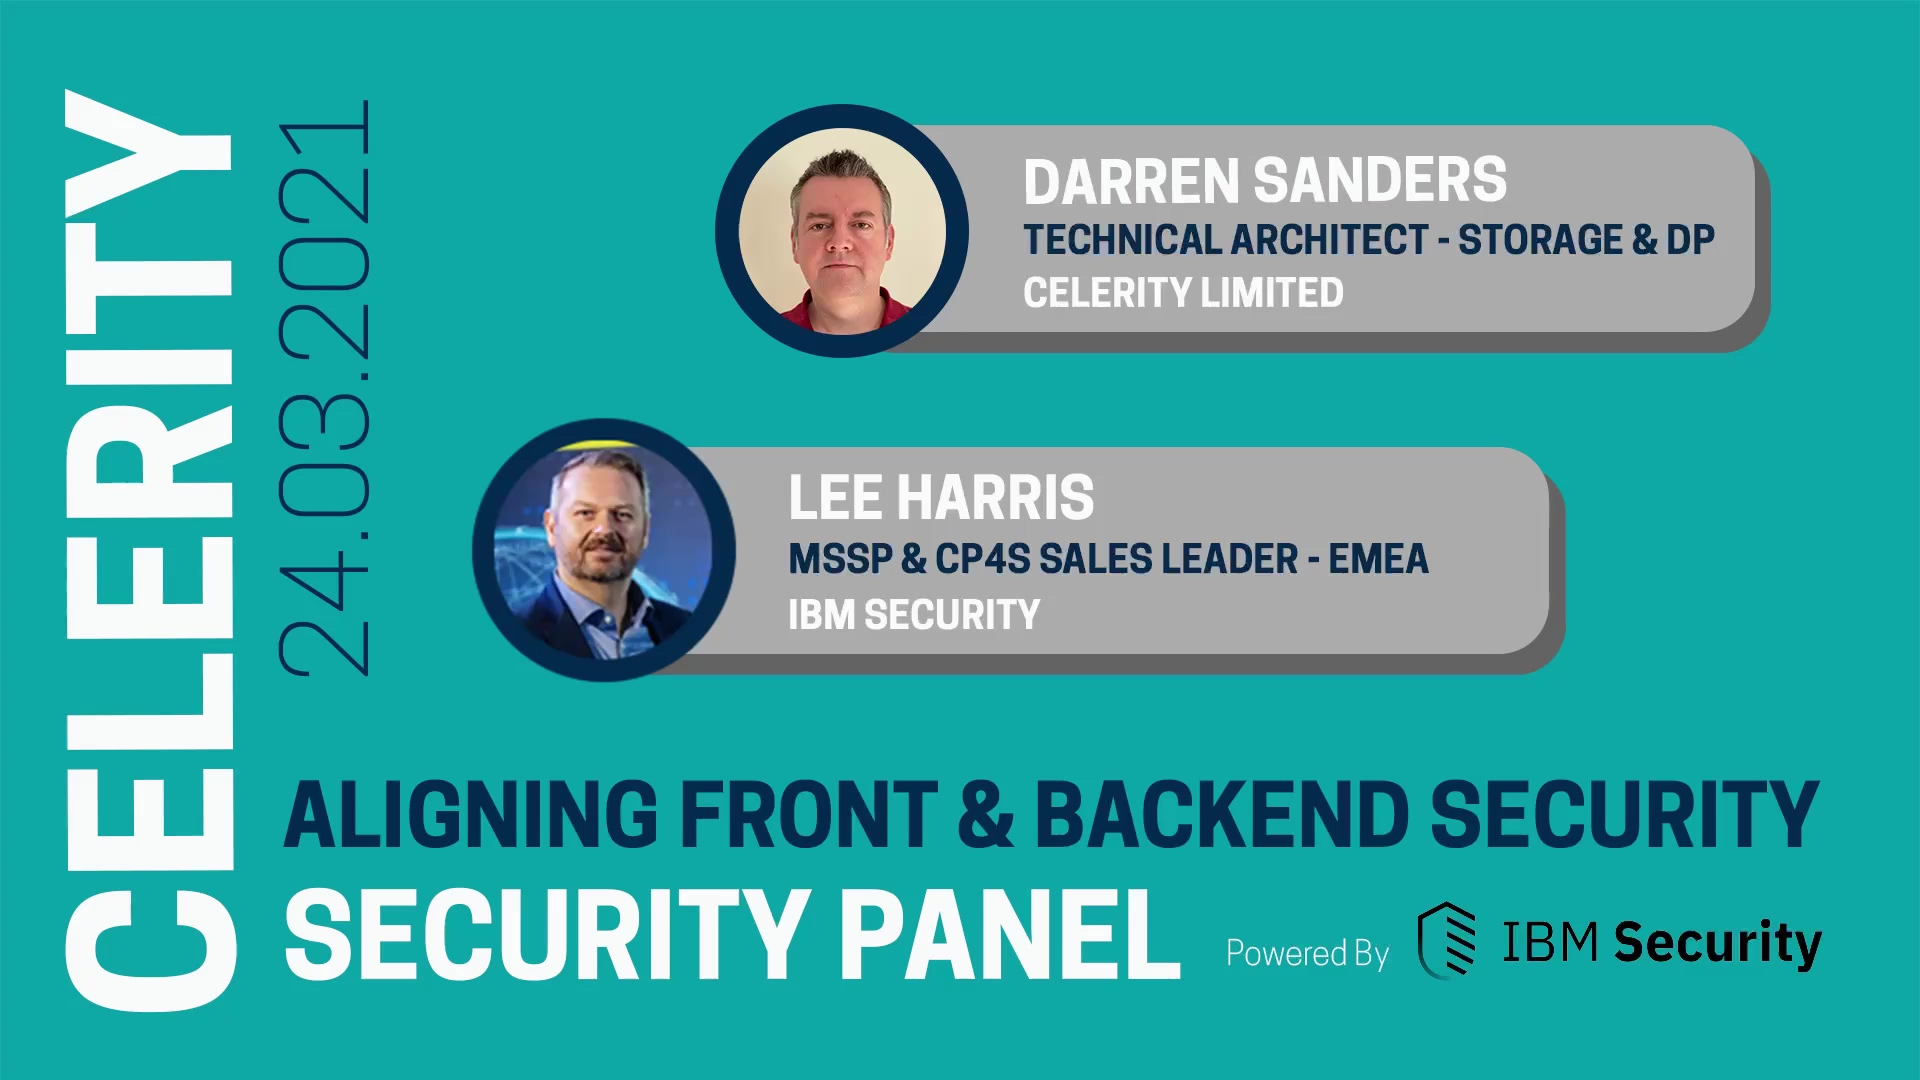 Security Panel - Aligning Front & Backend Security